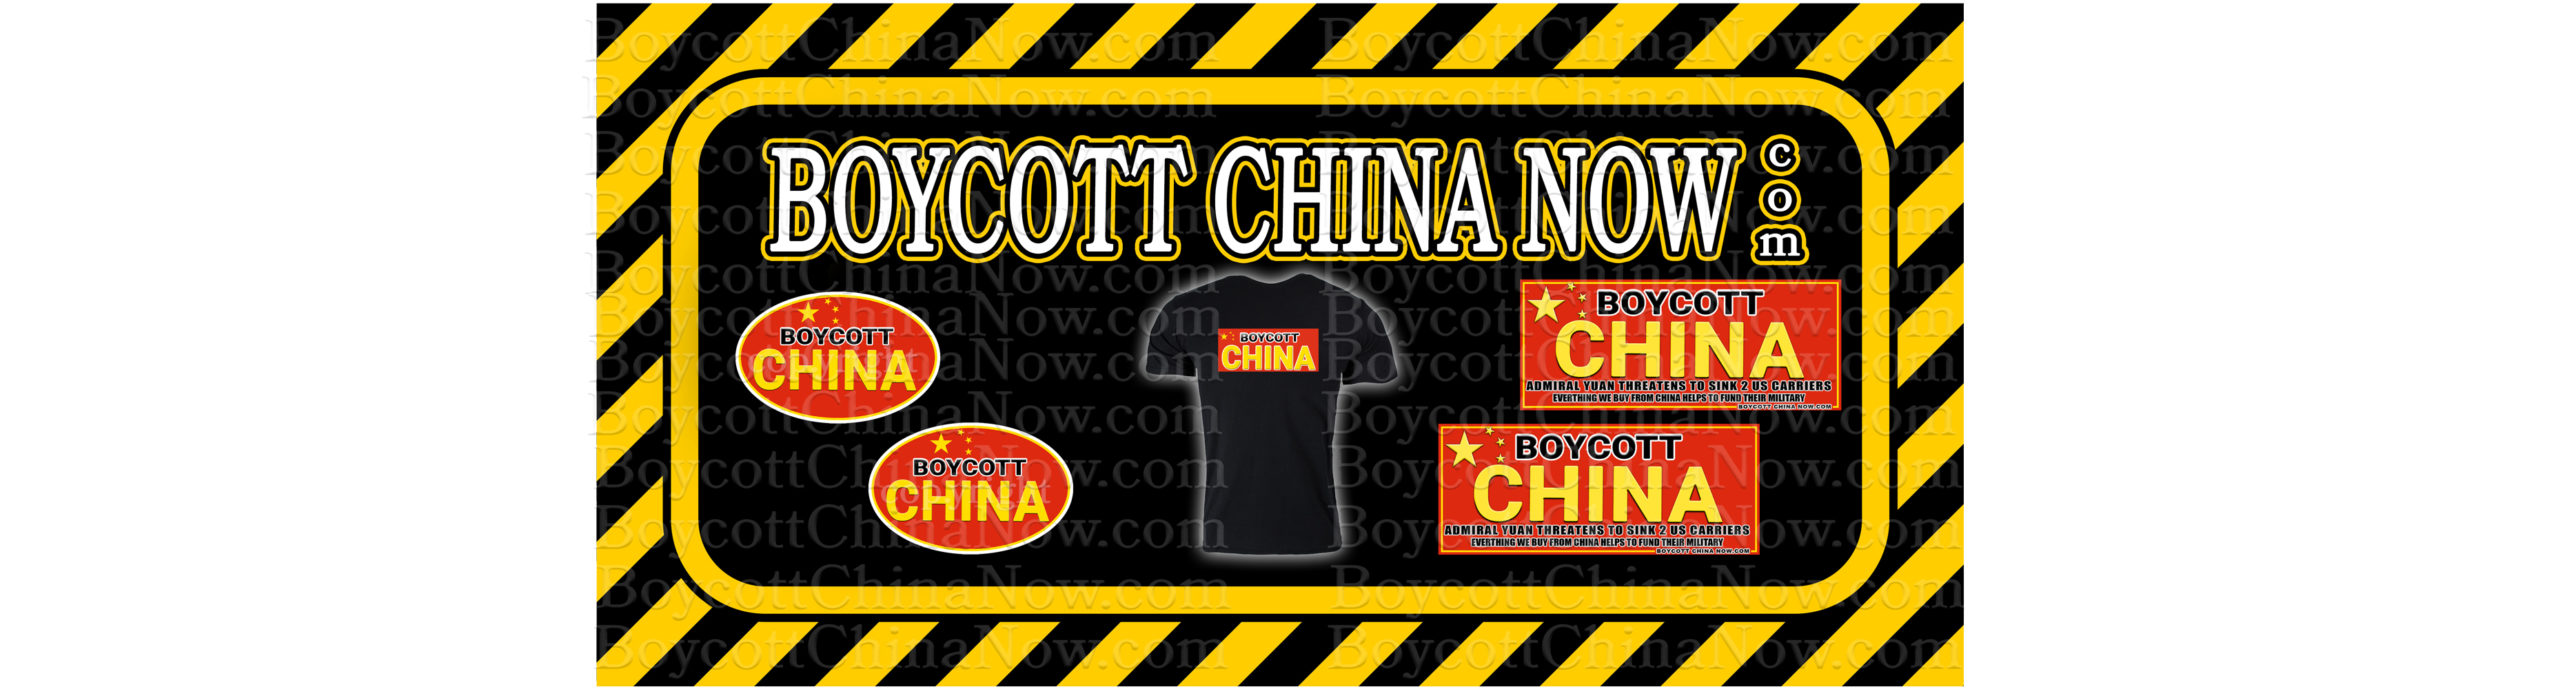 BOYCOTT CHINA Now Stickers and Shirts